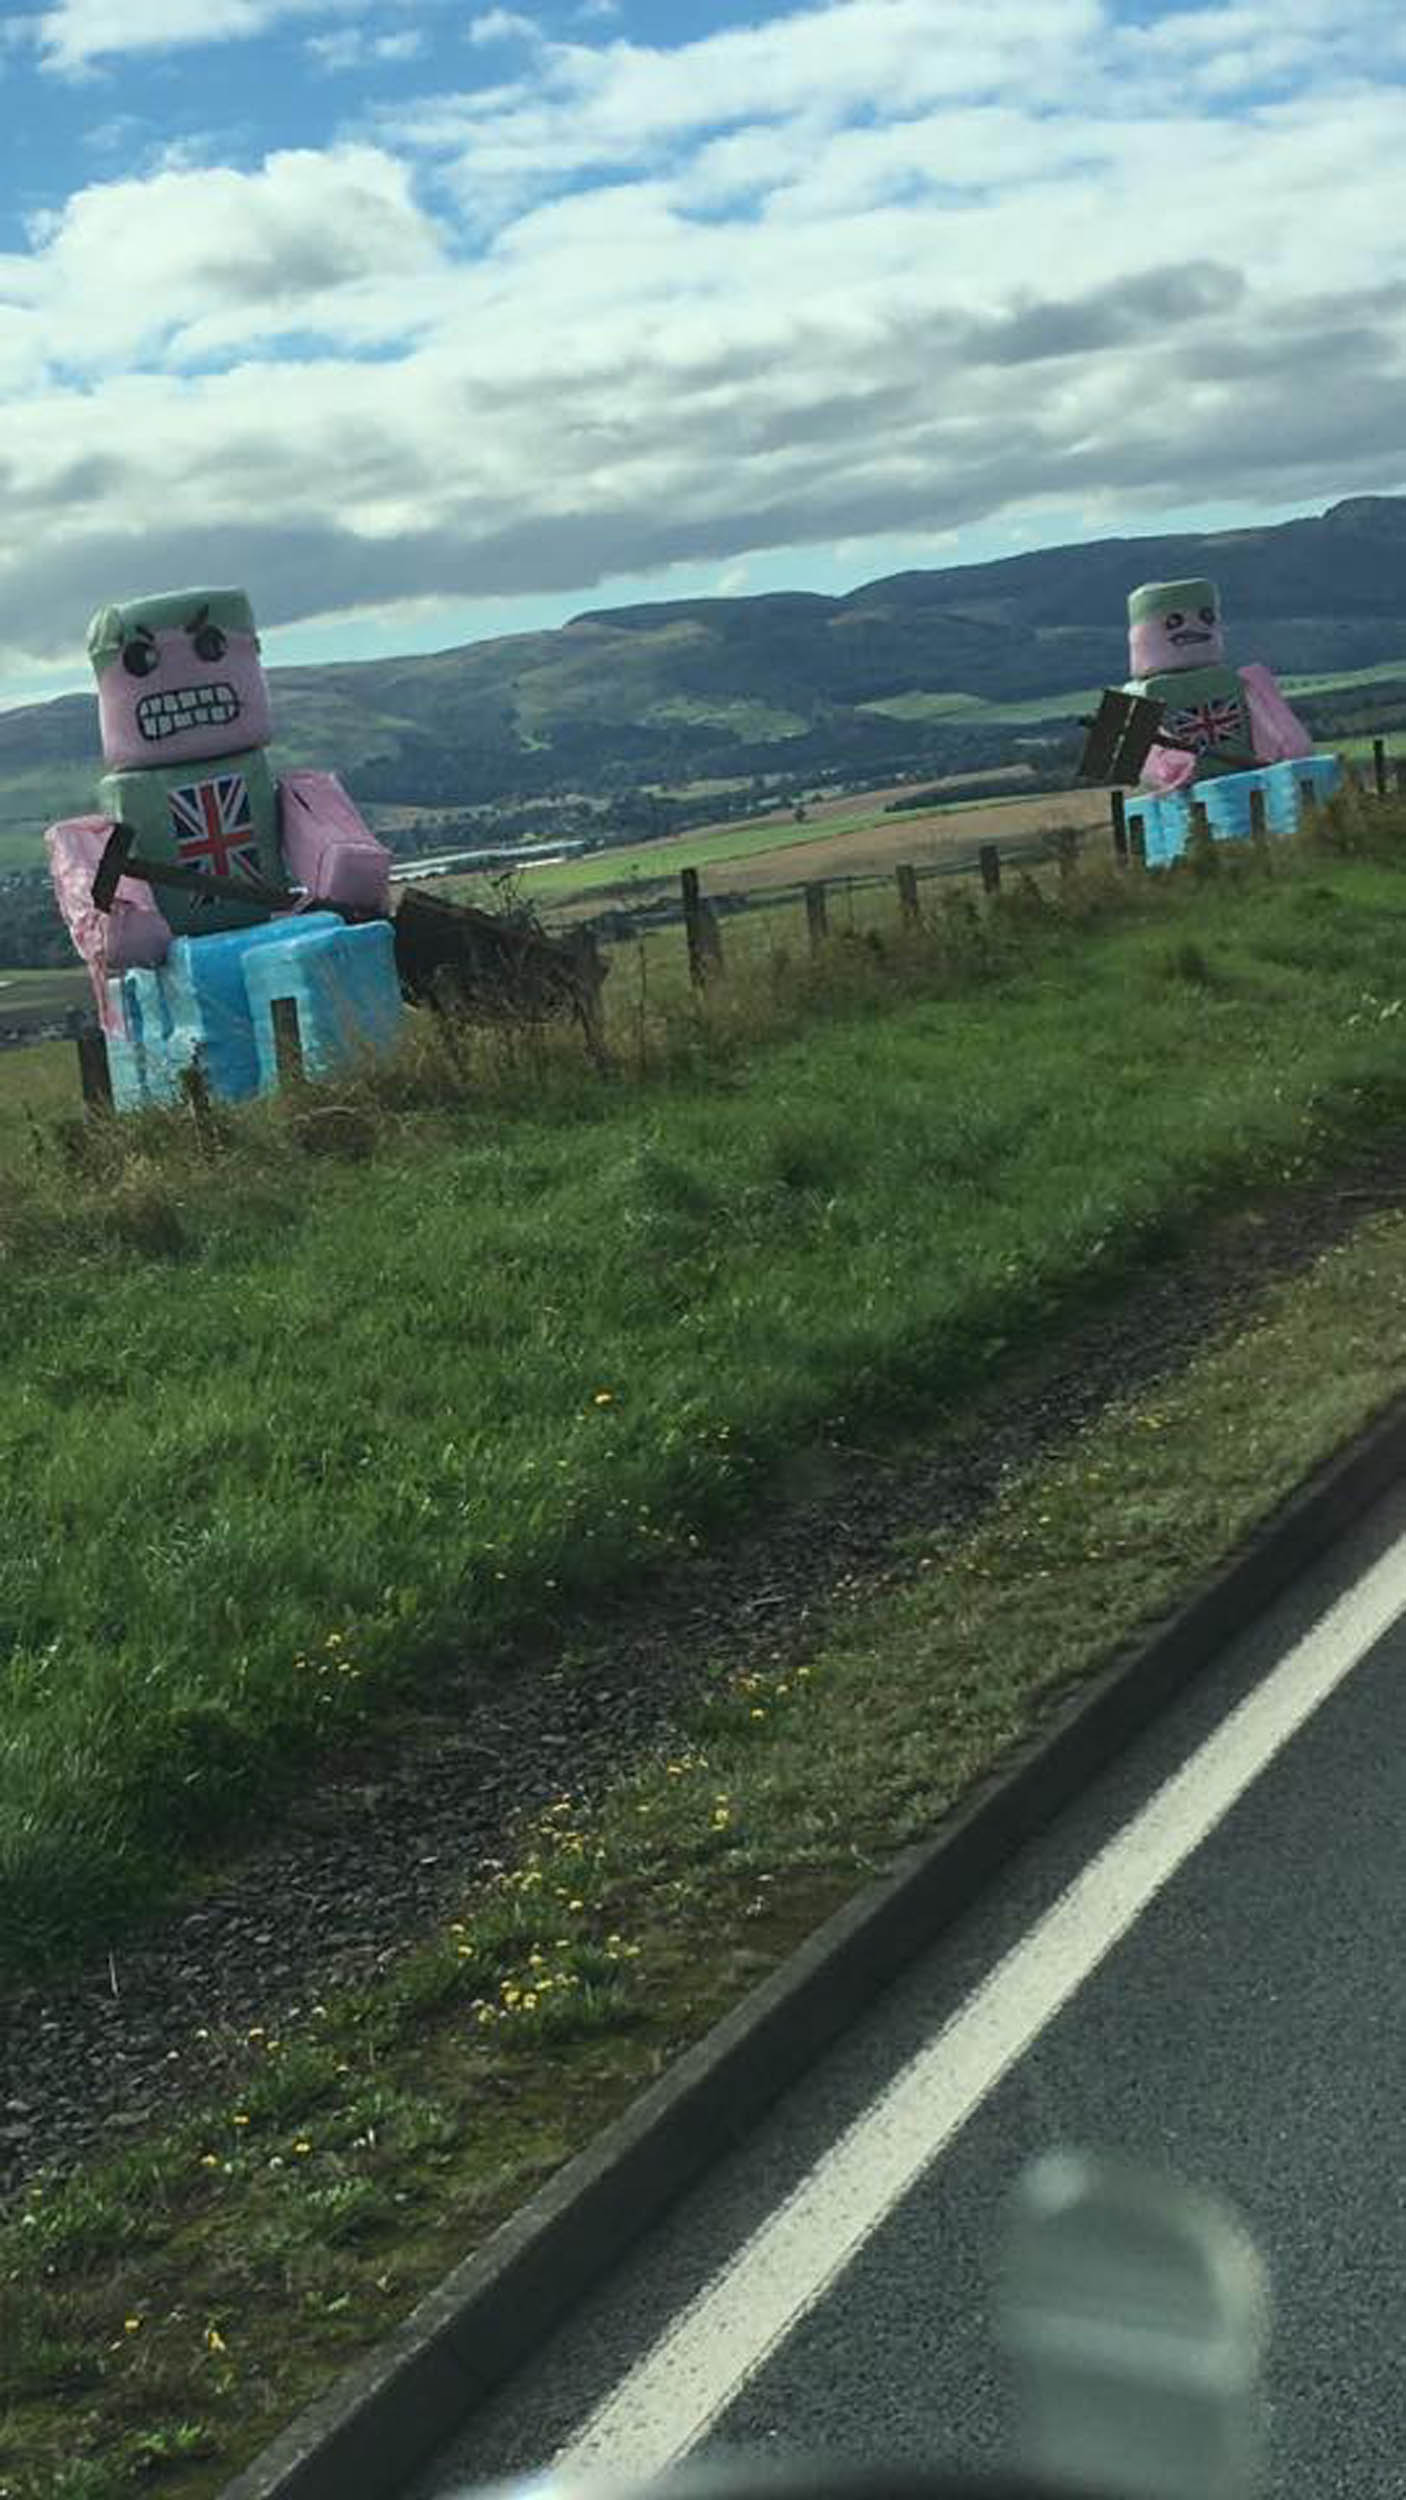 The statues are next to the A9, one of Scotland's busiest roads A PROUD dad has immortalised his sports star sons by creating two 15ft-high statues - made from hay bales. Billy Fotheringham made the giant canoes and canoeists after his boys were selected to represent the UK. The 45-year-old used different blue, pink and grey plastic on the hay bales to create the canoes before adding wooden paddles and Union Jacks. The statues were created right next to one of Scotland's busiest roads - the A9 as it passes Bankhead Farm, near Perth. Sandy, 18, and Wills, 16, were selected to represent GB in wild water canoe racing, taking part in the under-23 category at international championships in Austria this July. Billy said the statues are intended to help raise money for the boys, who spend more than £1,000 each getting their canoes to international events.